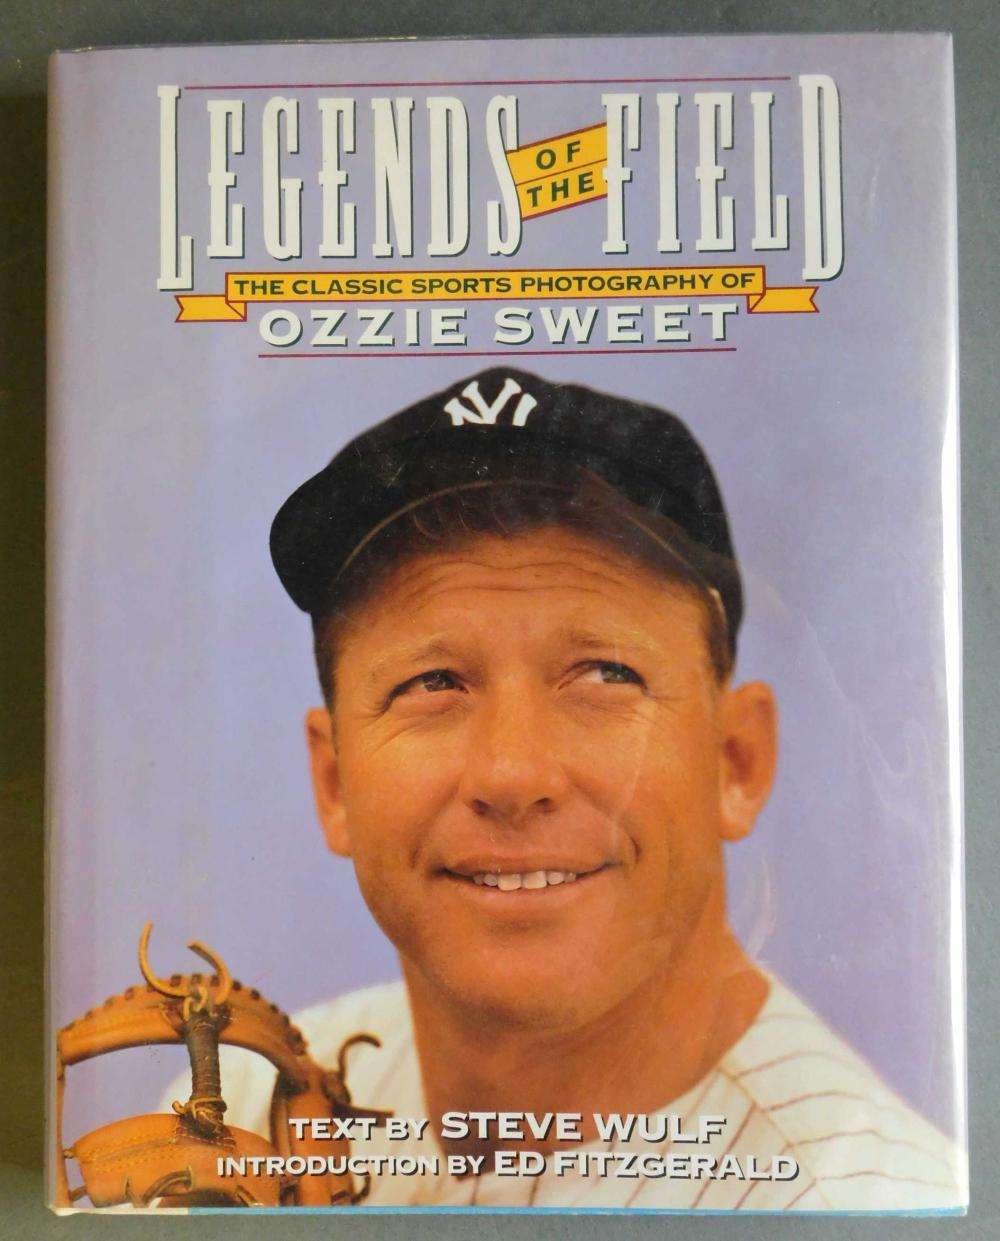 Legends Of The Field. Signed by baseball players.